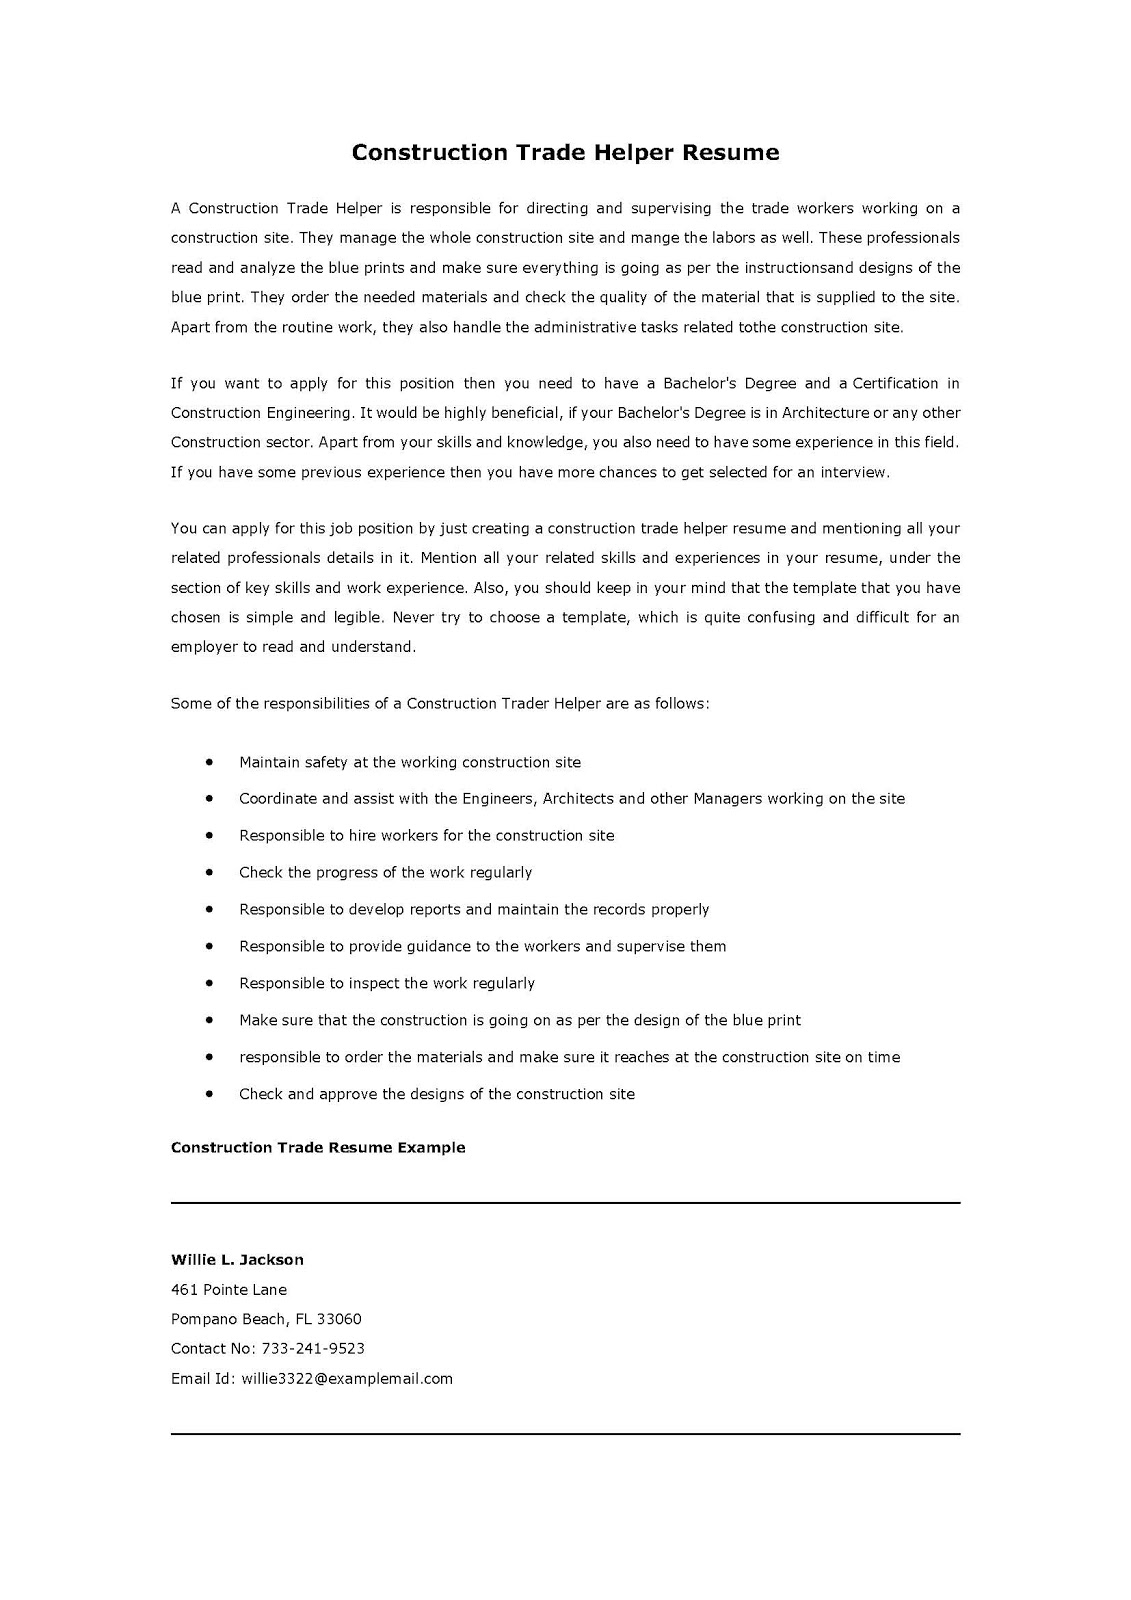 resume samples  construction trade helper resume